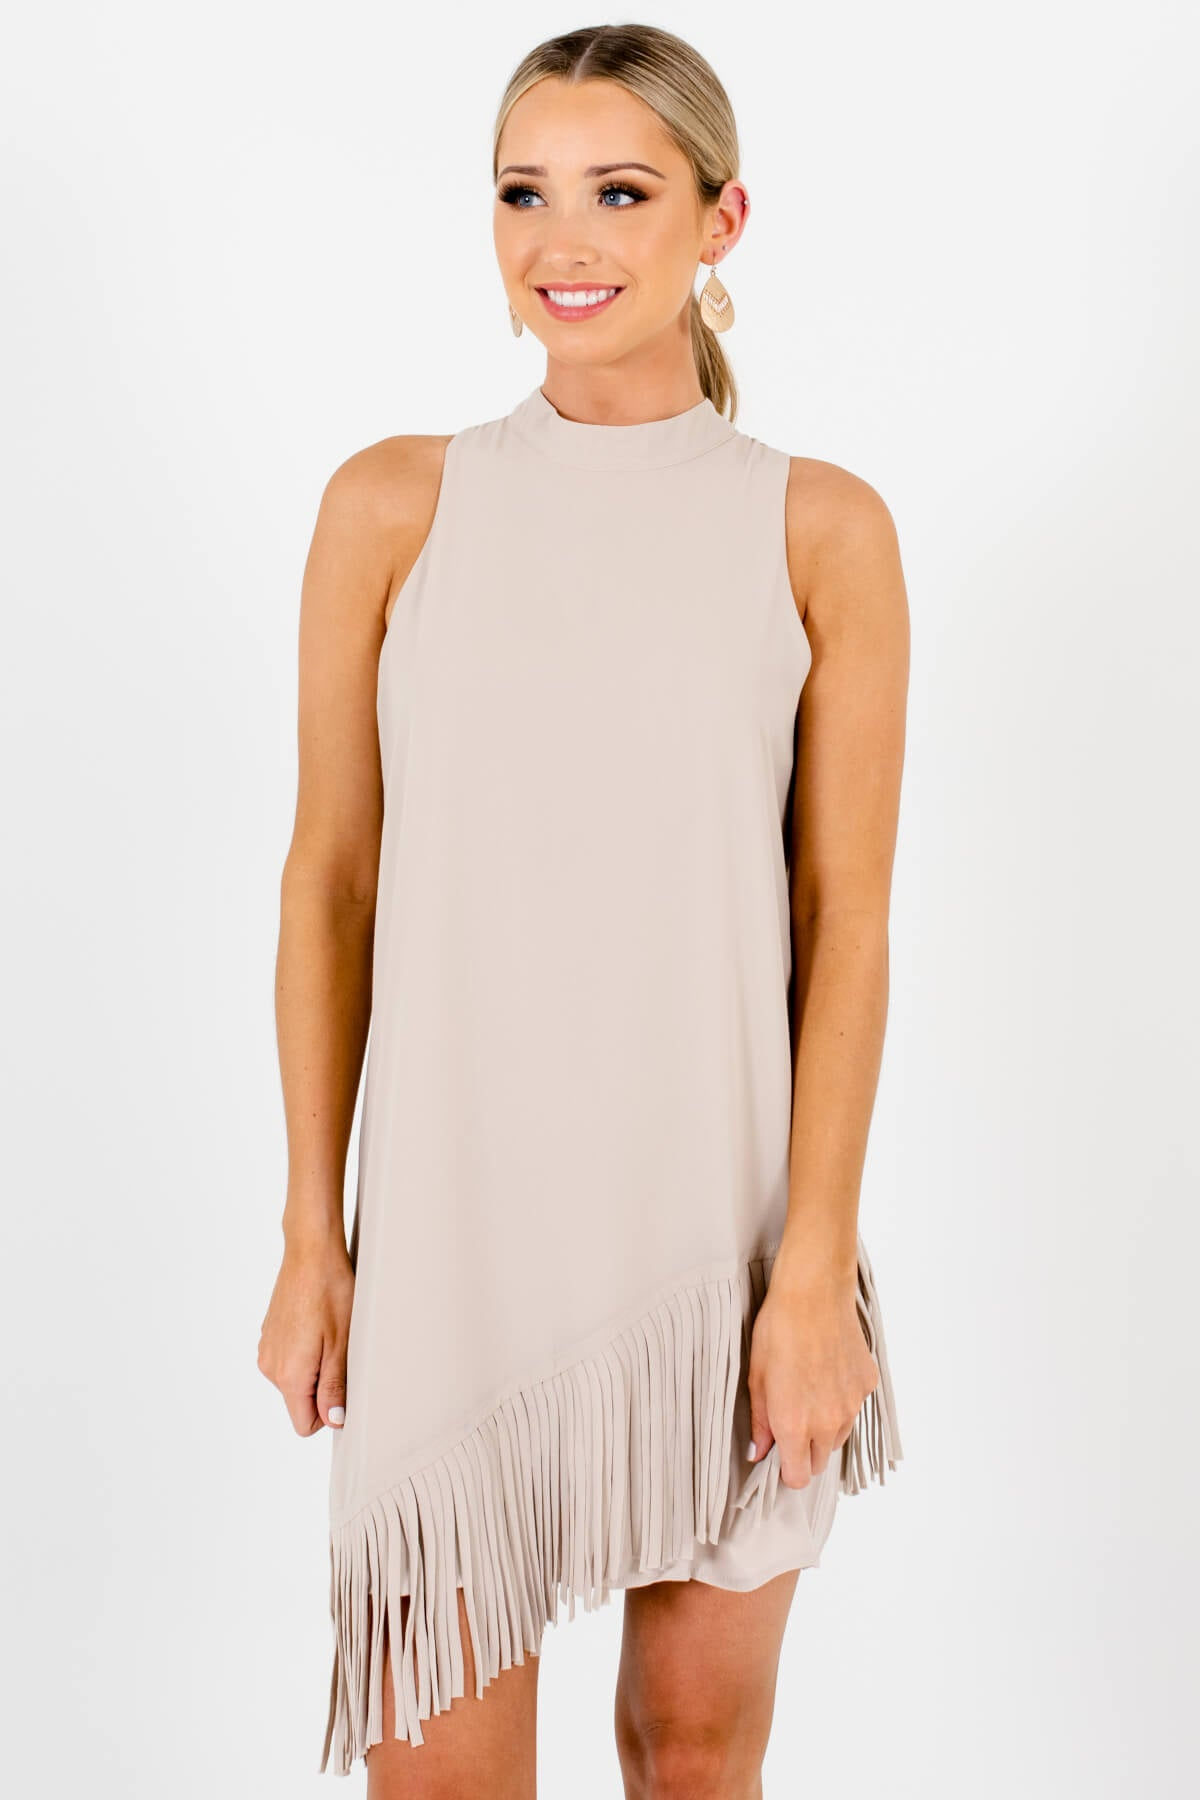 Beige Asymmetrical Overlay Fringe Mini Dresses Affordable Boutique